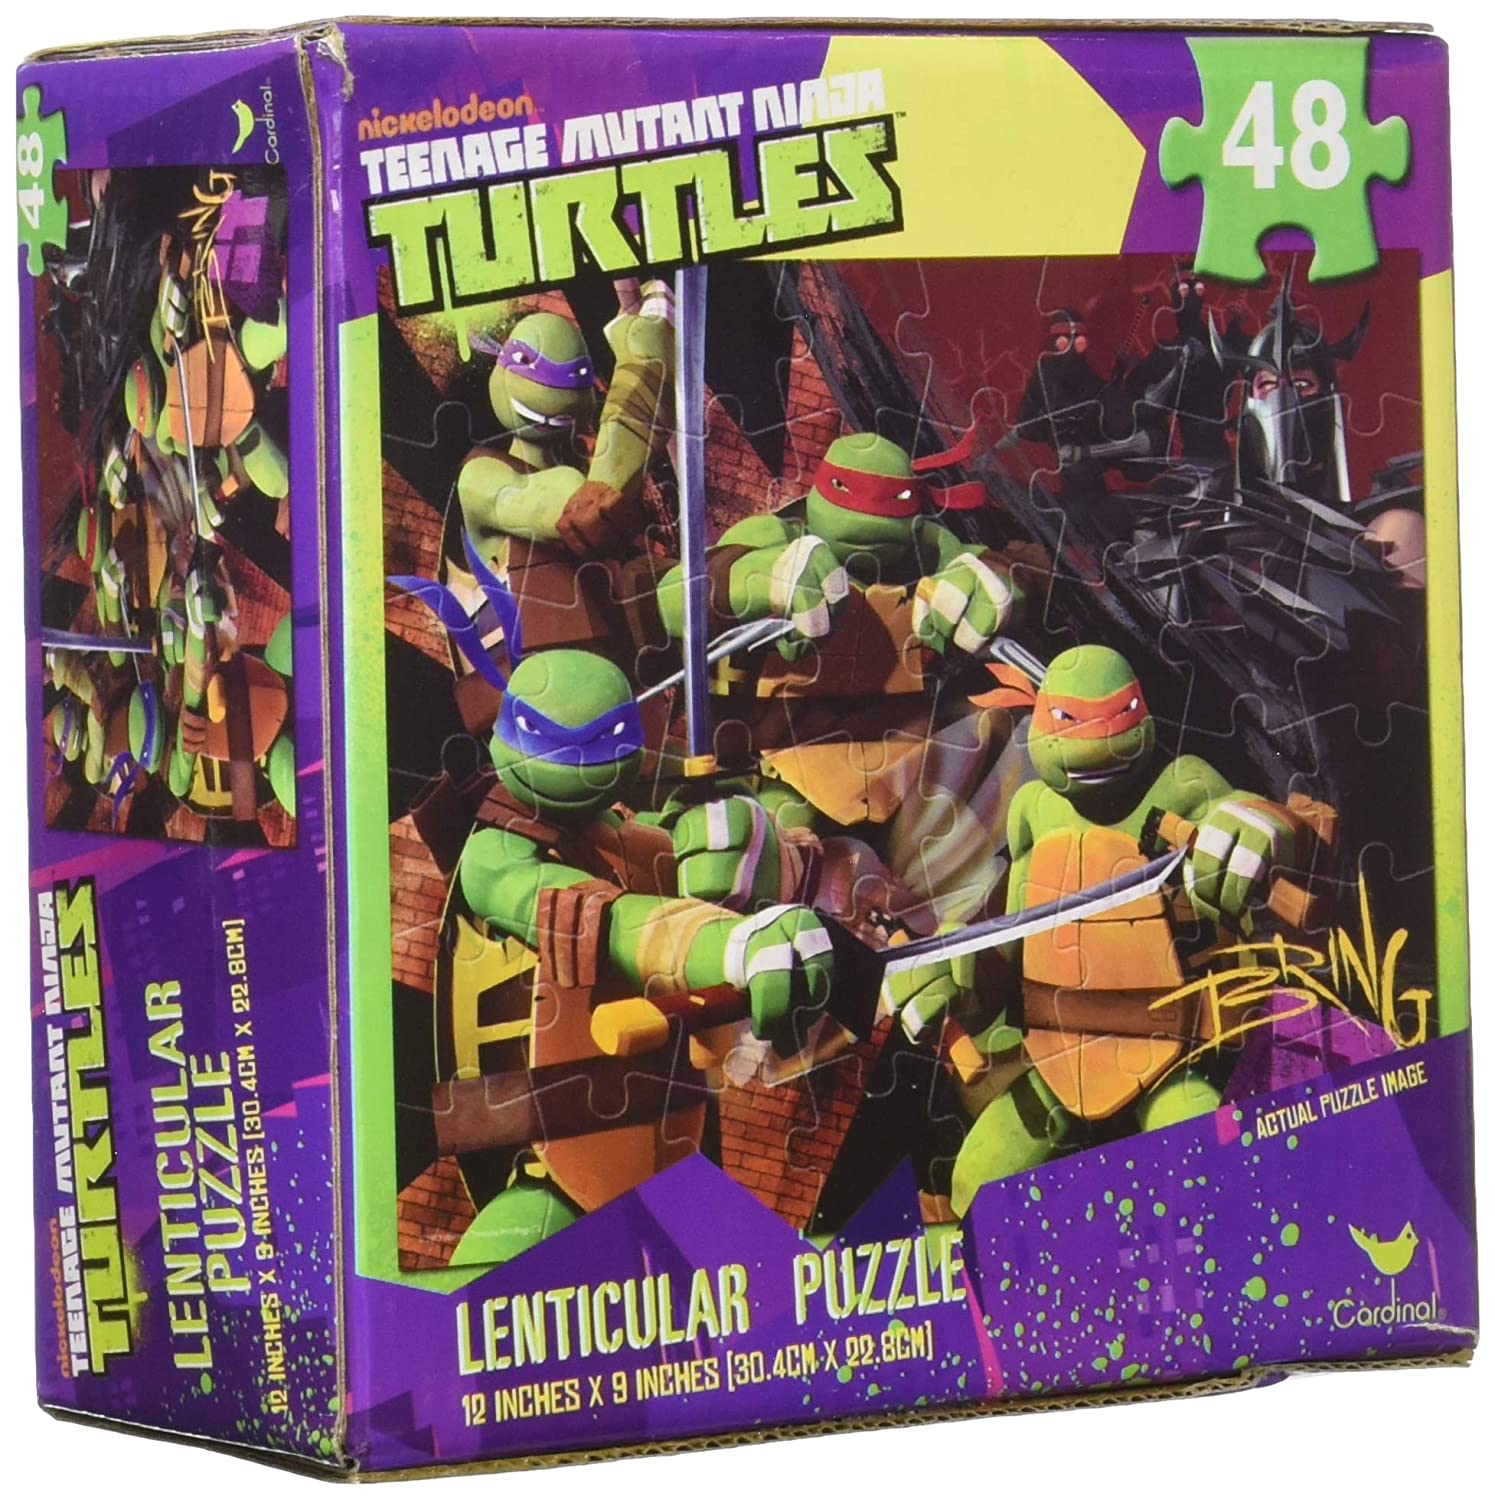 Teenage Mutant Ninja Turtles 48 Piece Lenticular 3-D Puzzle